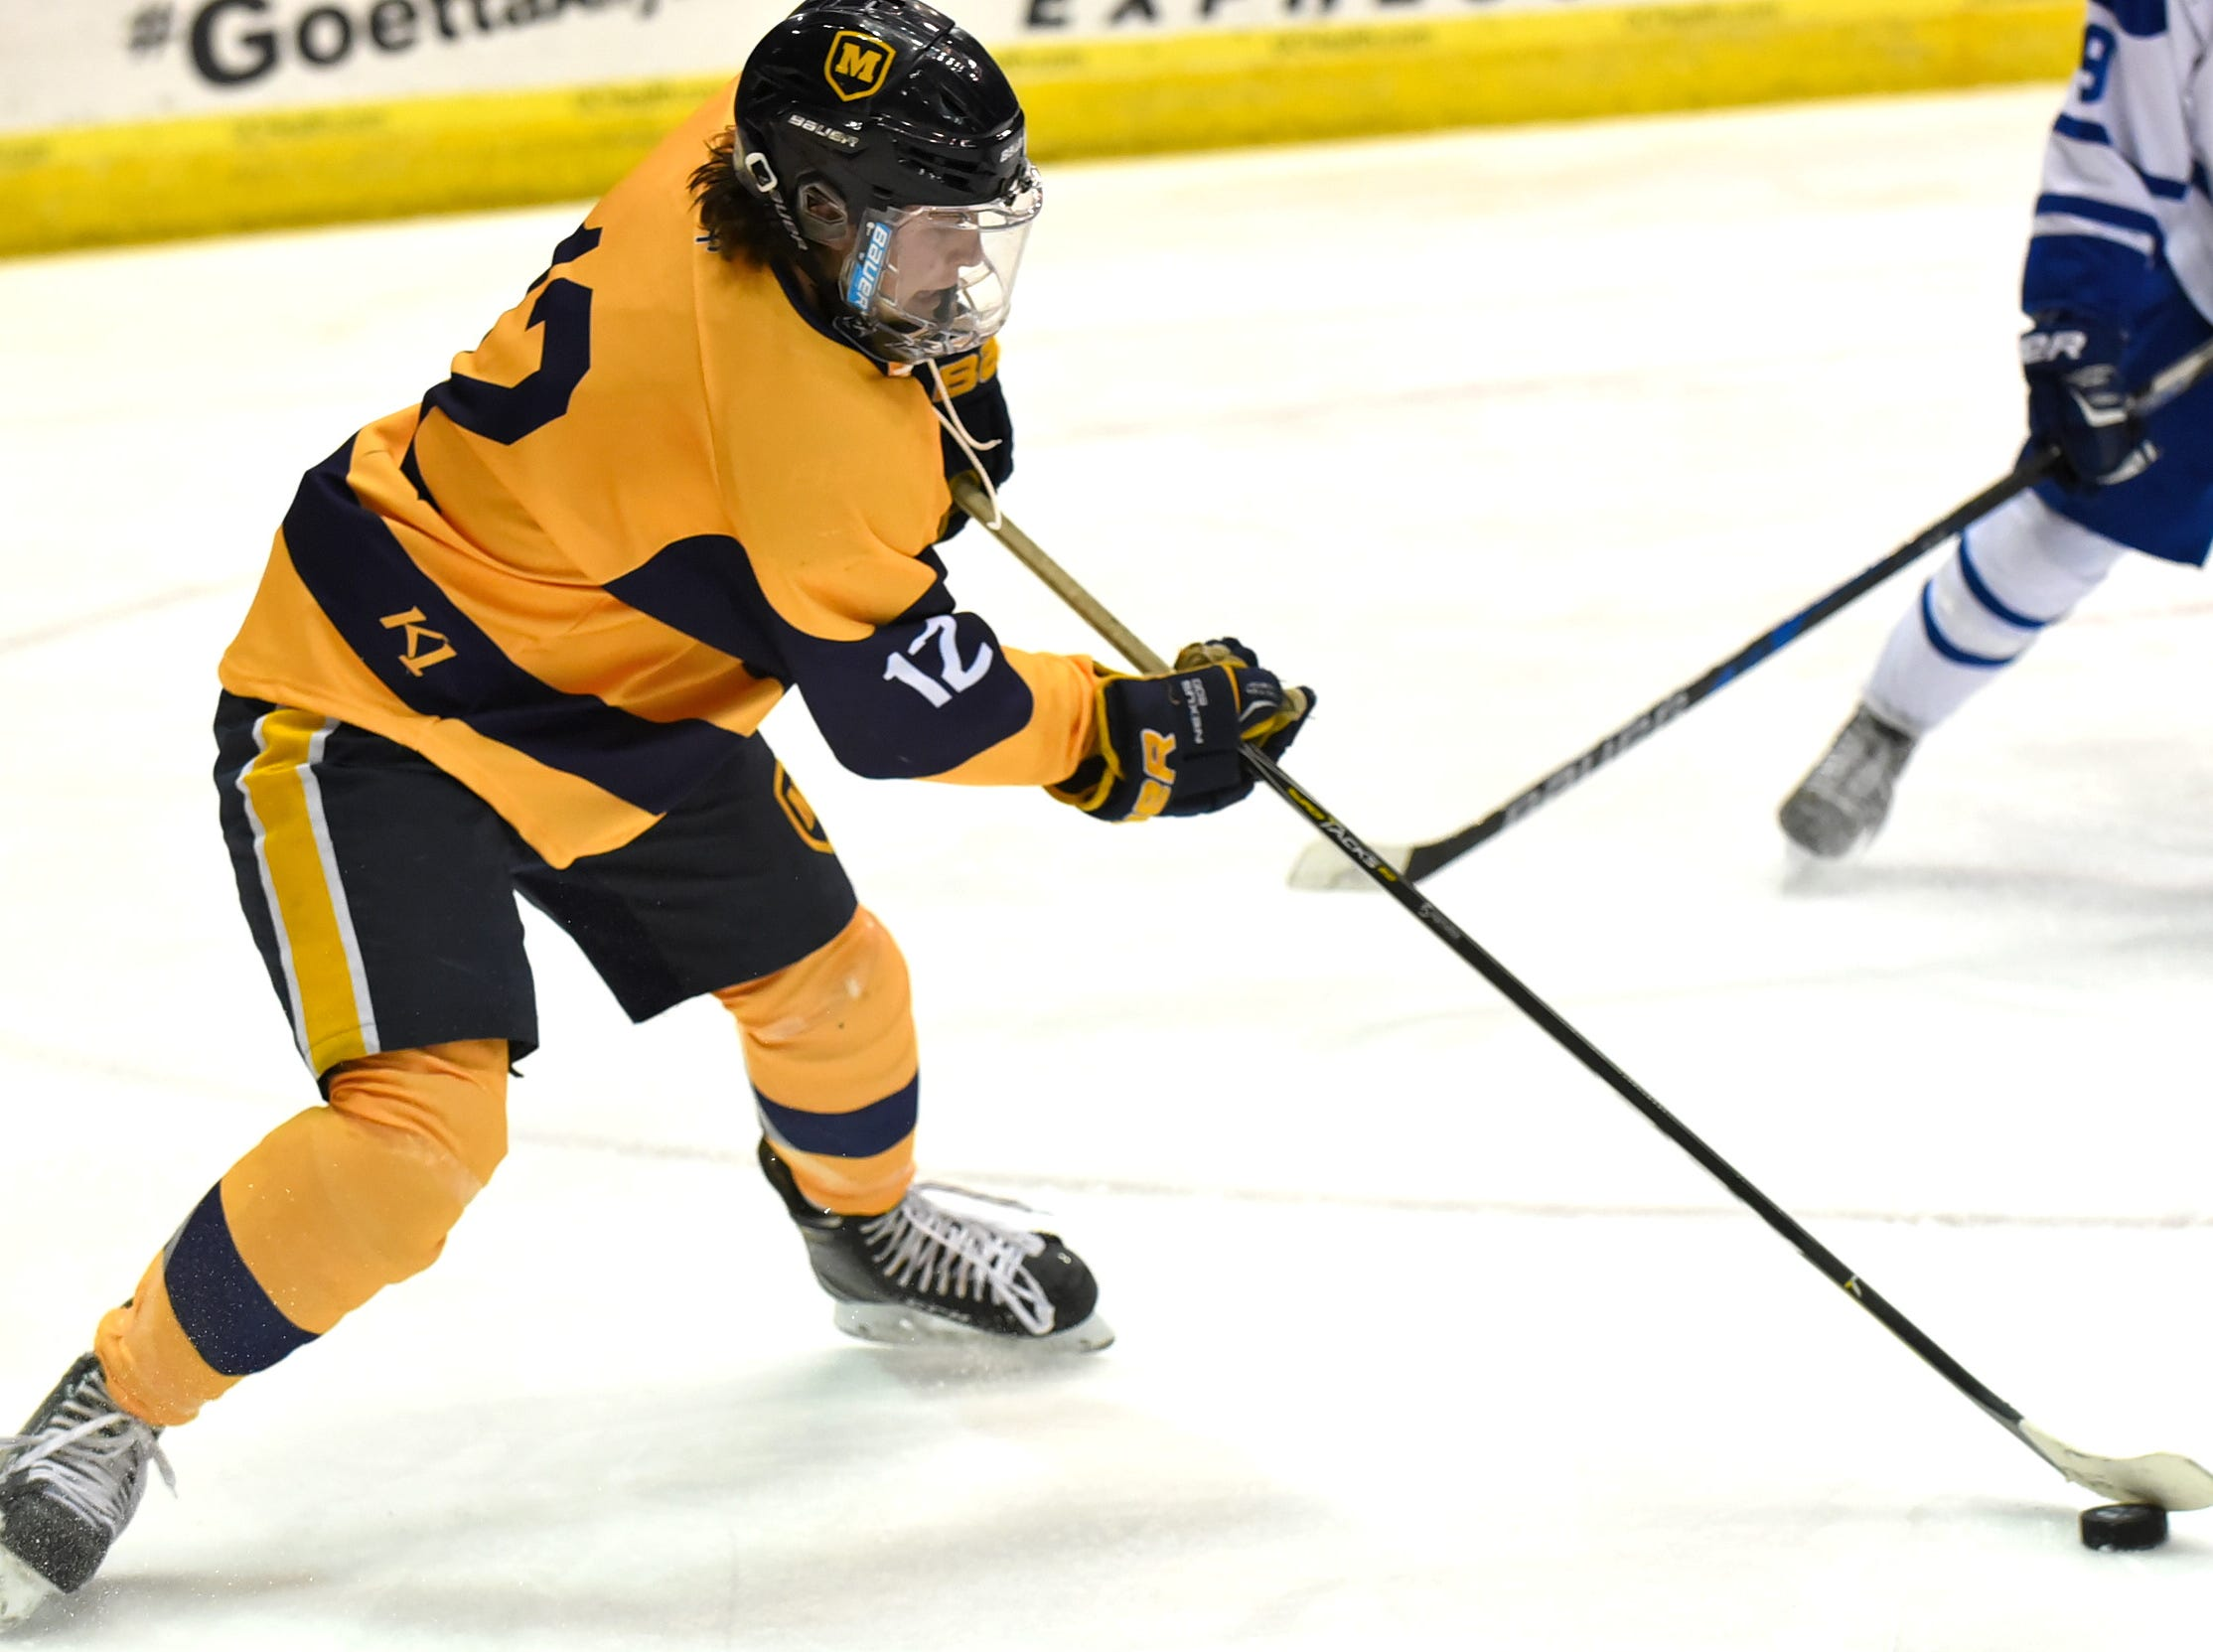 Drew Totin holds control of the puck for Moeller at US Bank Arena, December 7, 2018.